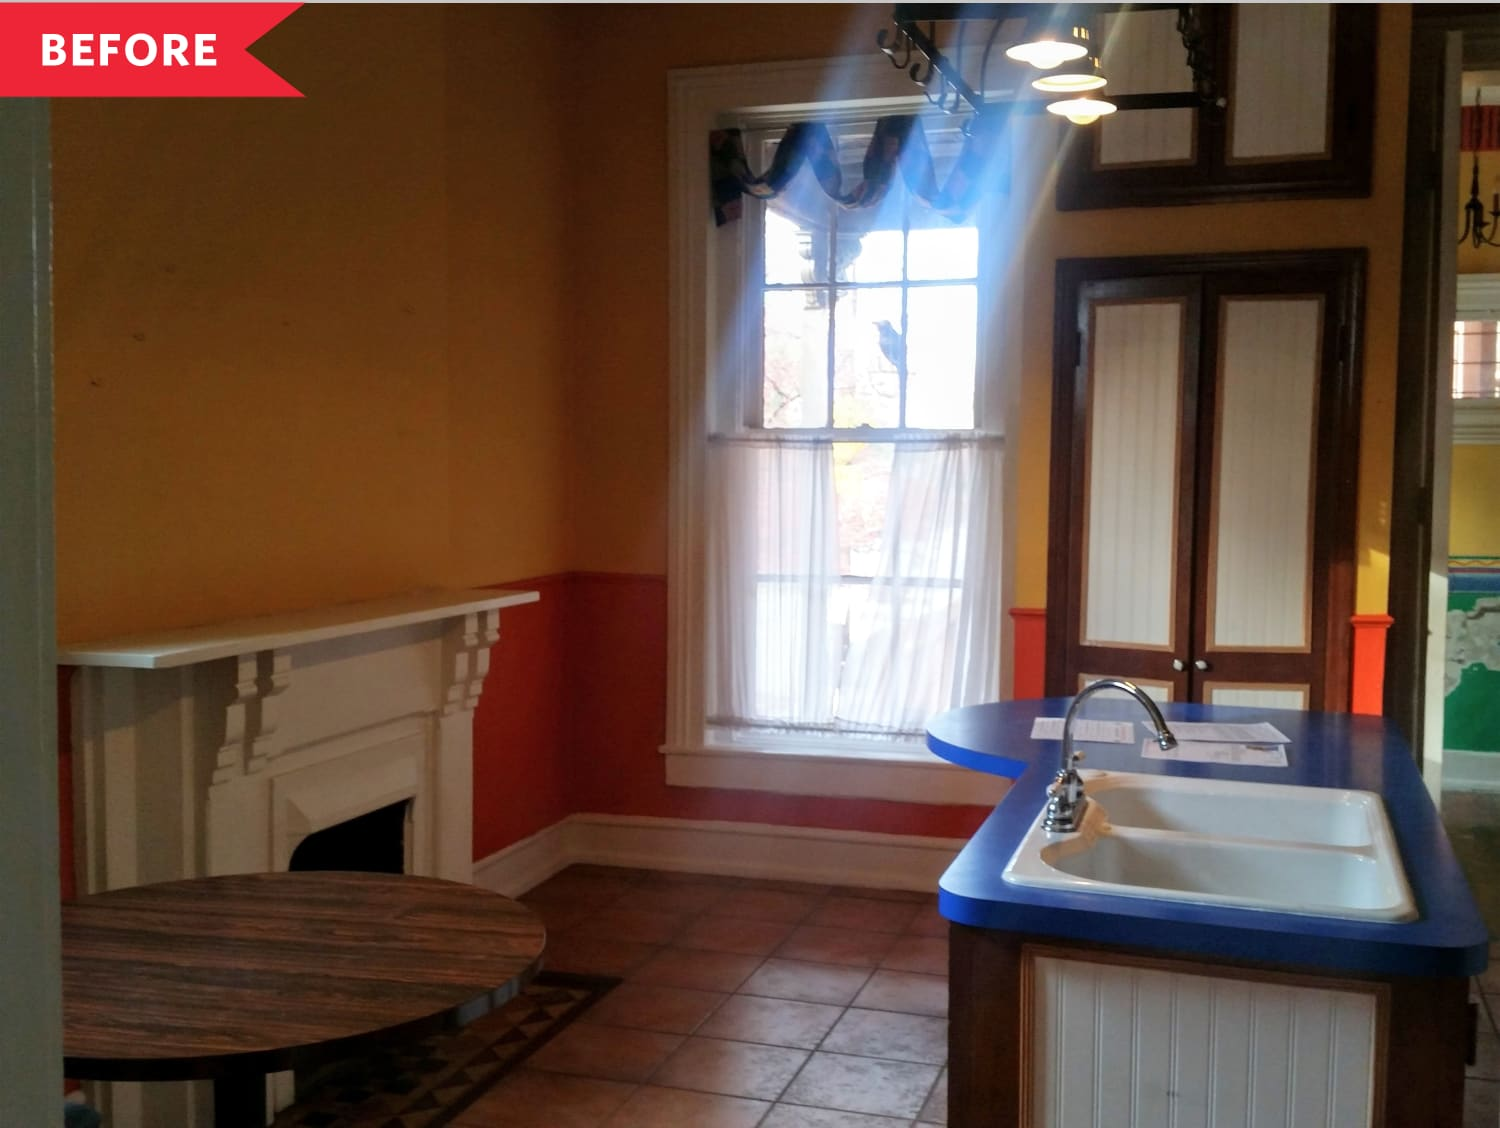 Before & After: A 'Crayola-Colored Nightmare' Victorian House Gets an Unbelievable Transformation